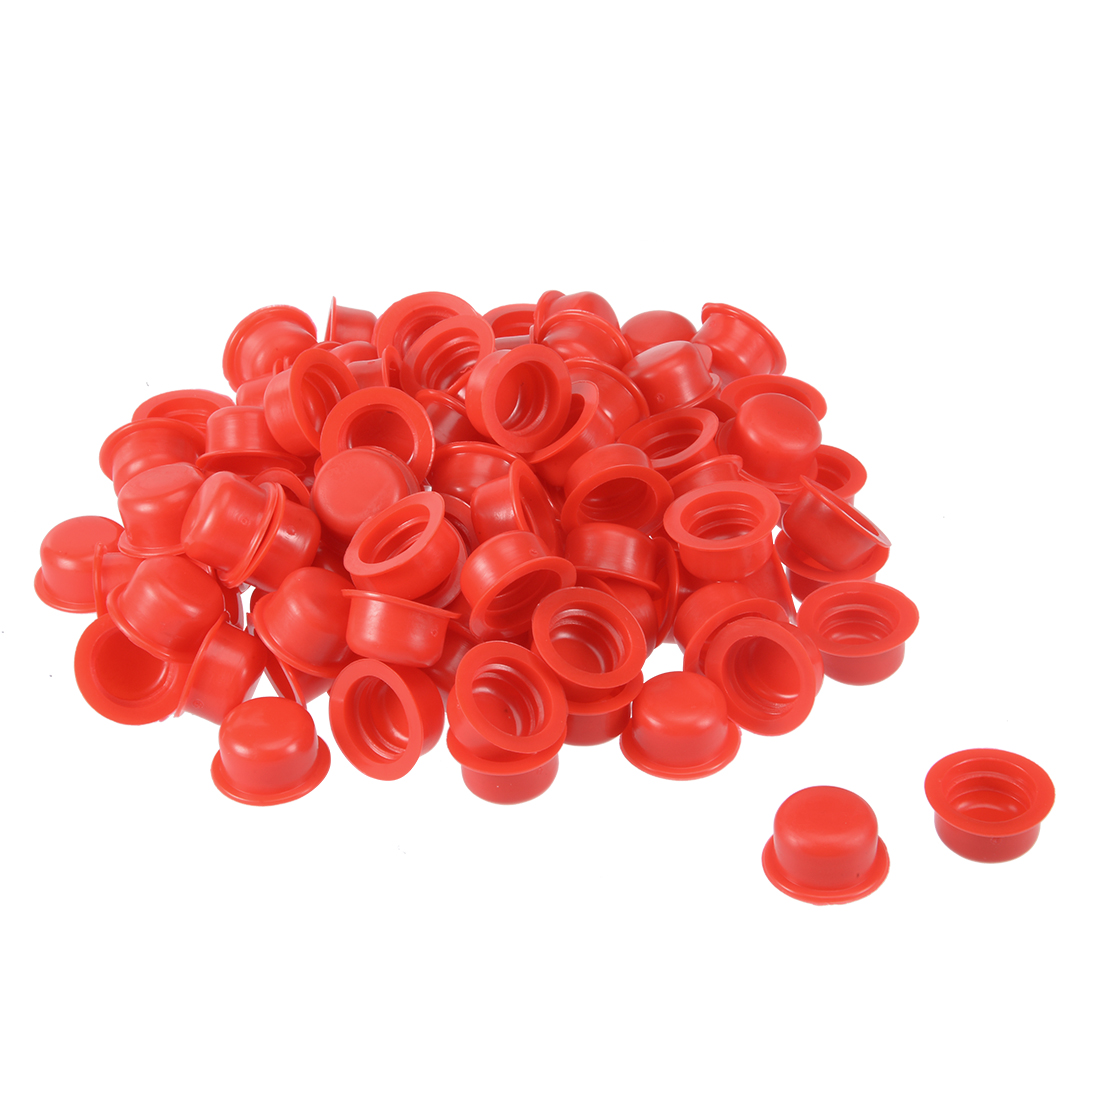 100pcs PVC G1/2 Round Head Threaded Hole Stoppers Waterproof Tapered Caps Red